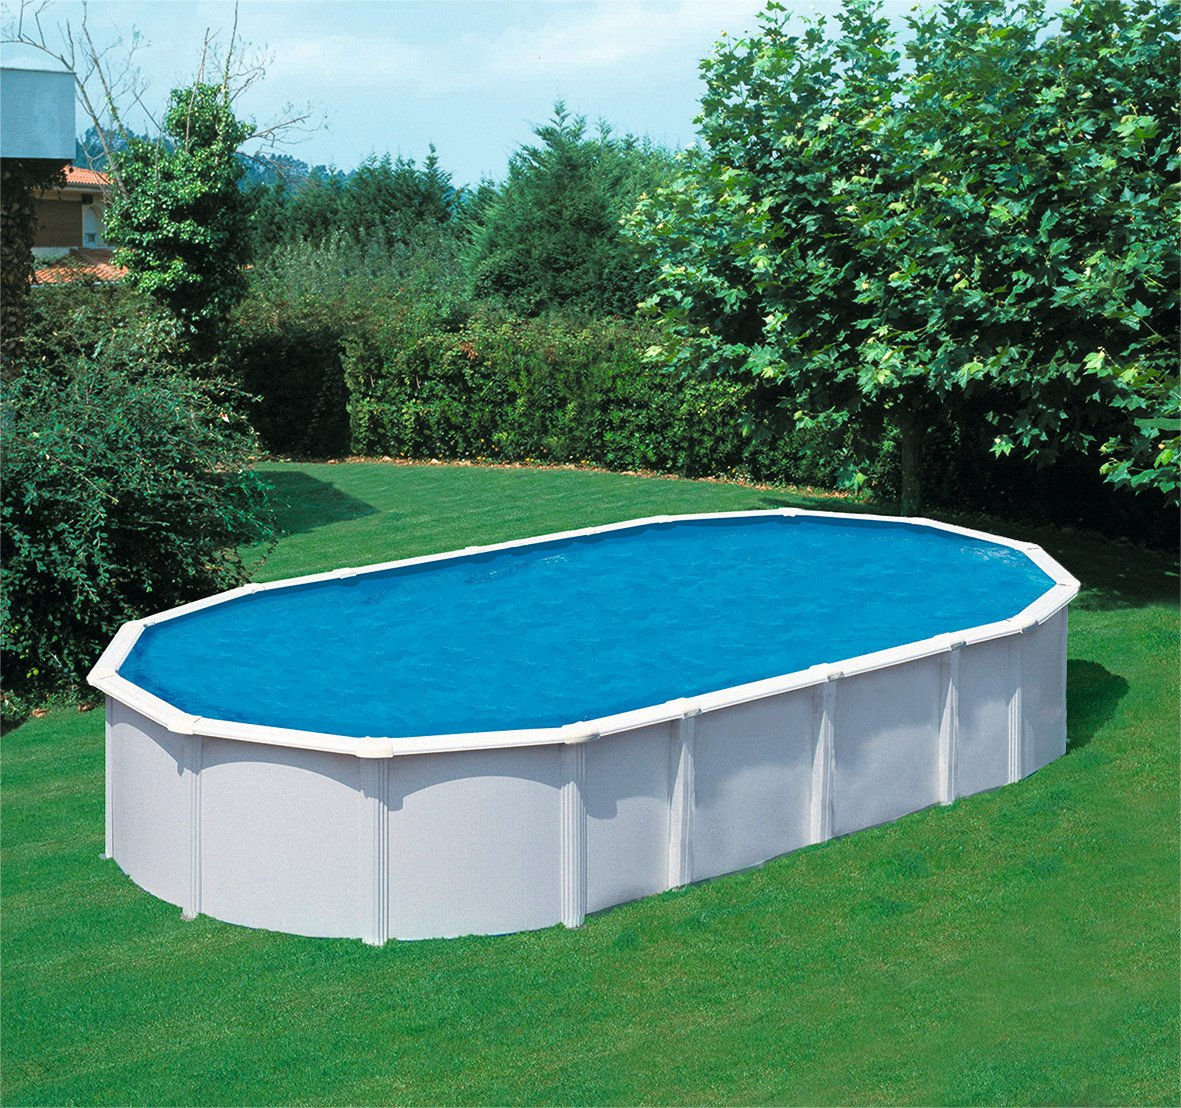 Pool Rund Oder Oval Pool Set Quotsteely Supreme Quot Rund Oval L 610 X B 360 X H 132